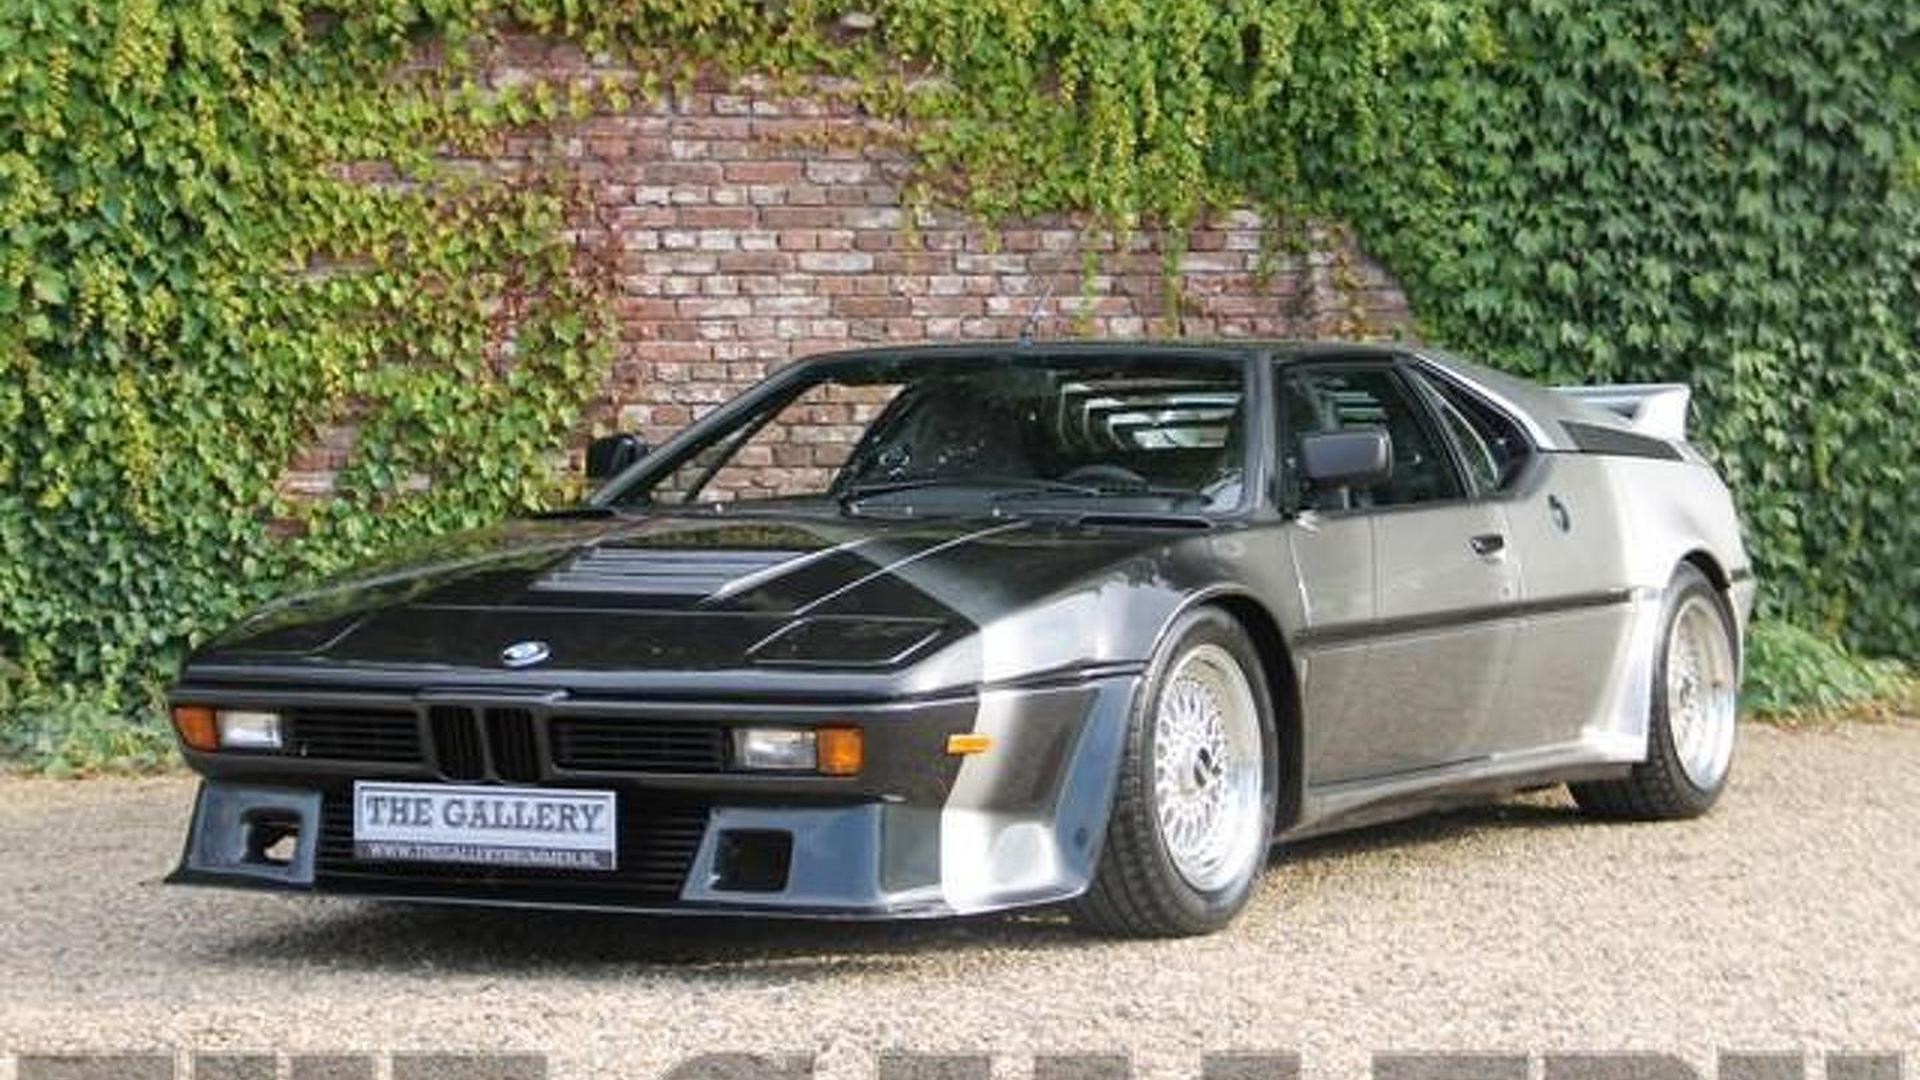 Bmw M1 For Sale >> 1981 Bmw M1 With Ahg Package On Sale For 229 500 Eur